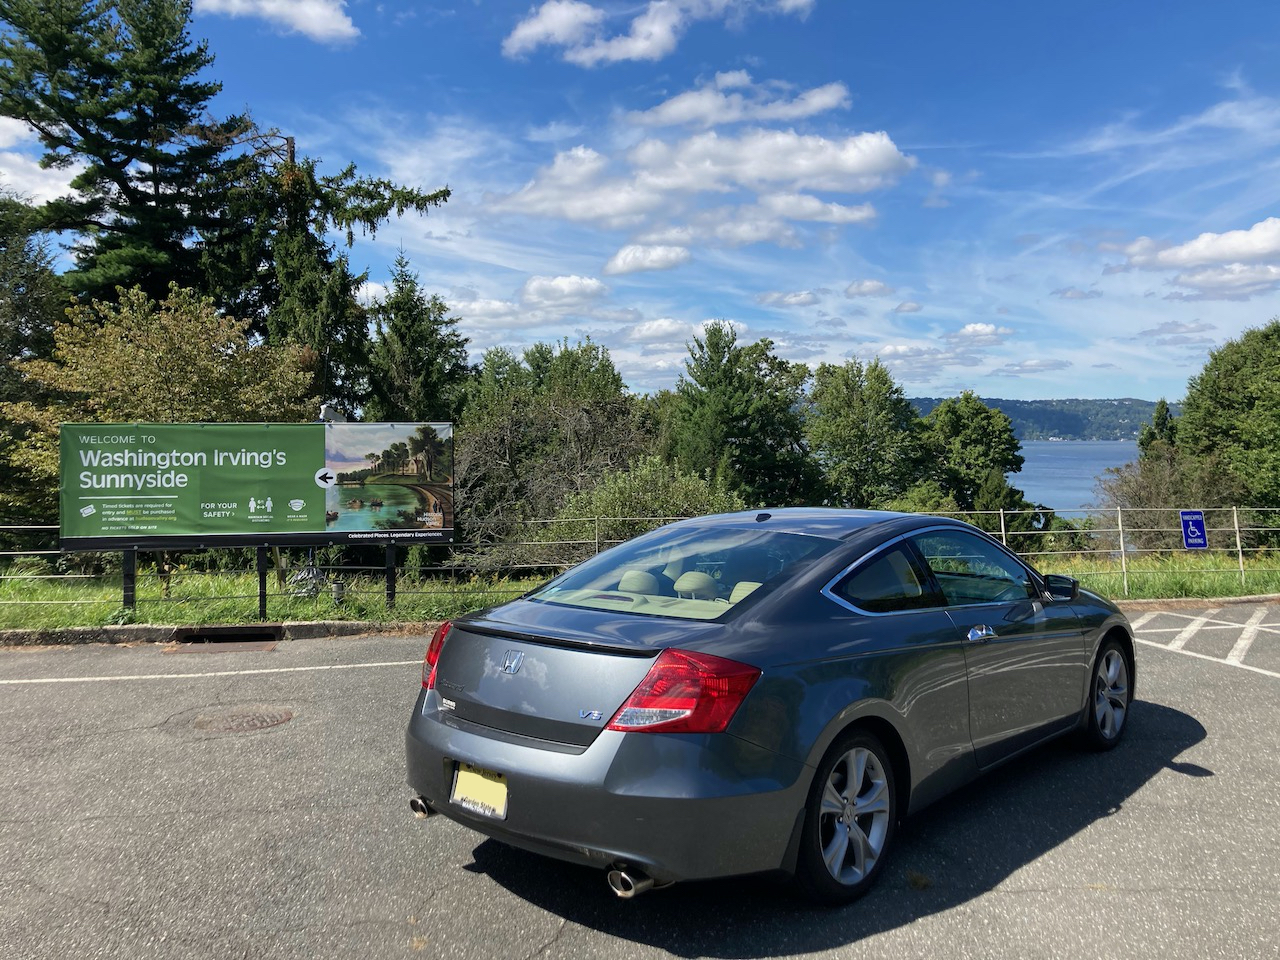 2012 Honda Accord parked in front of sign for Washington Irving's Sunnyside. The Hudson River is in the distance.